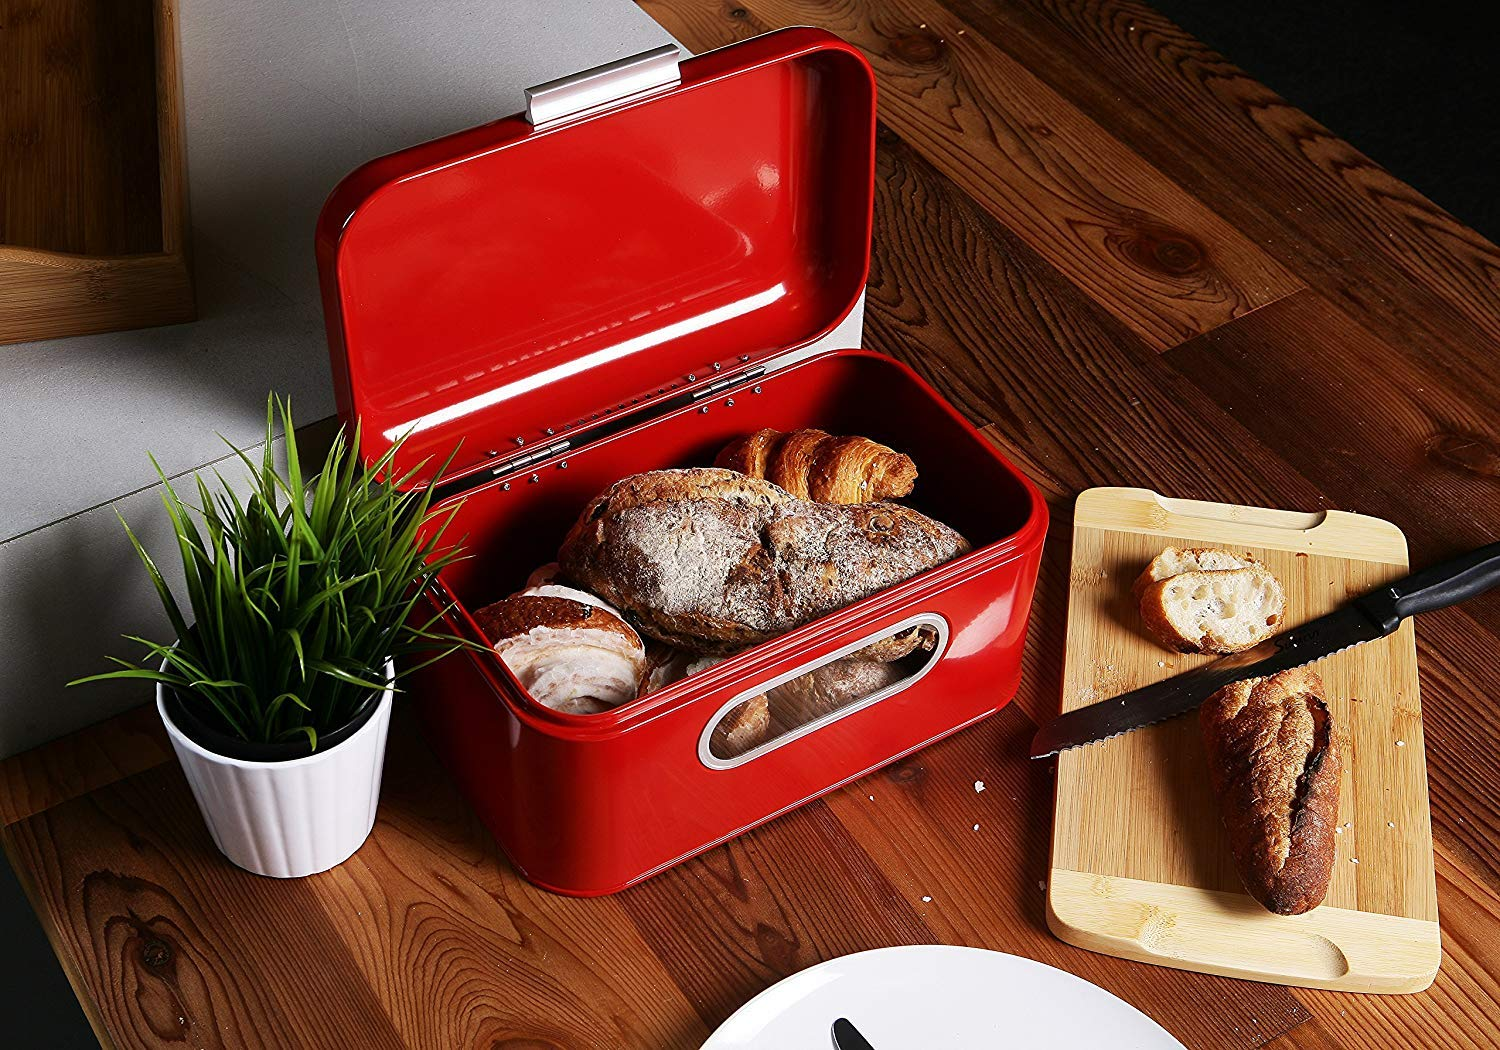 Bread Box for Kitchen Counter - Red Bread Bin, Retro Storage Container with Front Window, For Doughnuts, Pastries, Cookies